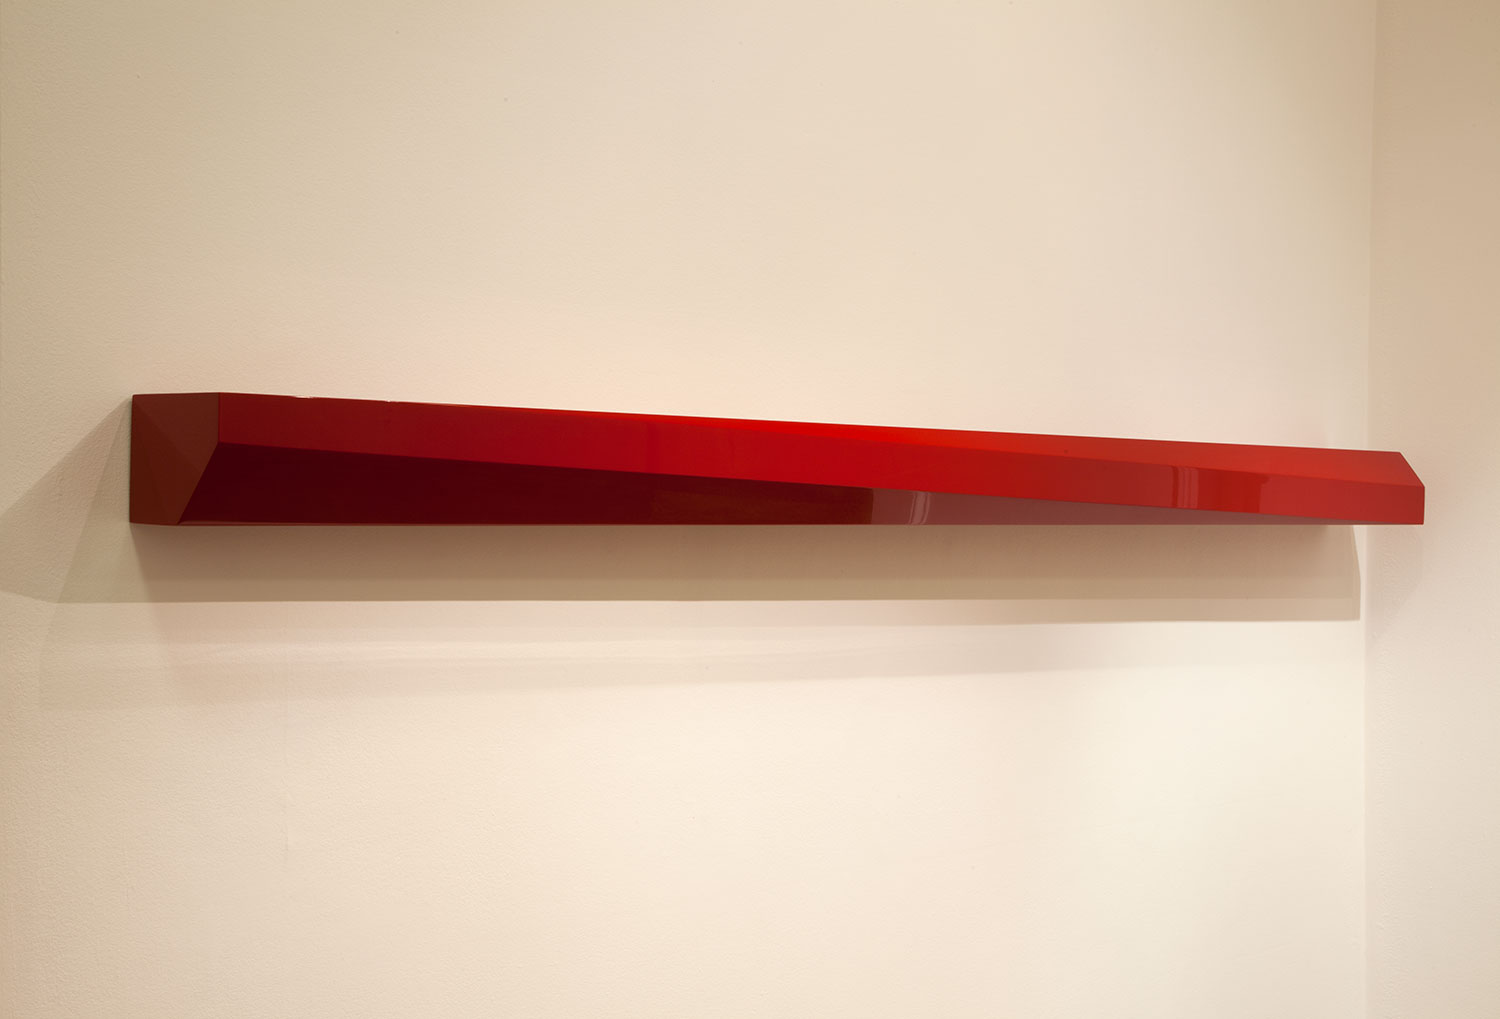 John McCracken, 'Neon' (1989, polyester resin, fibreglass and wood) 1